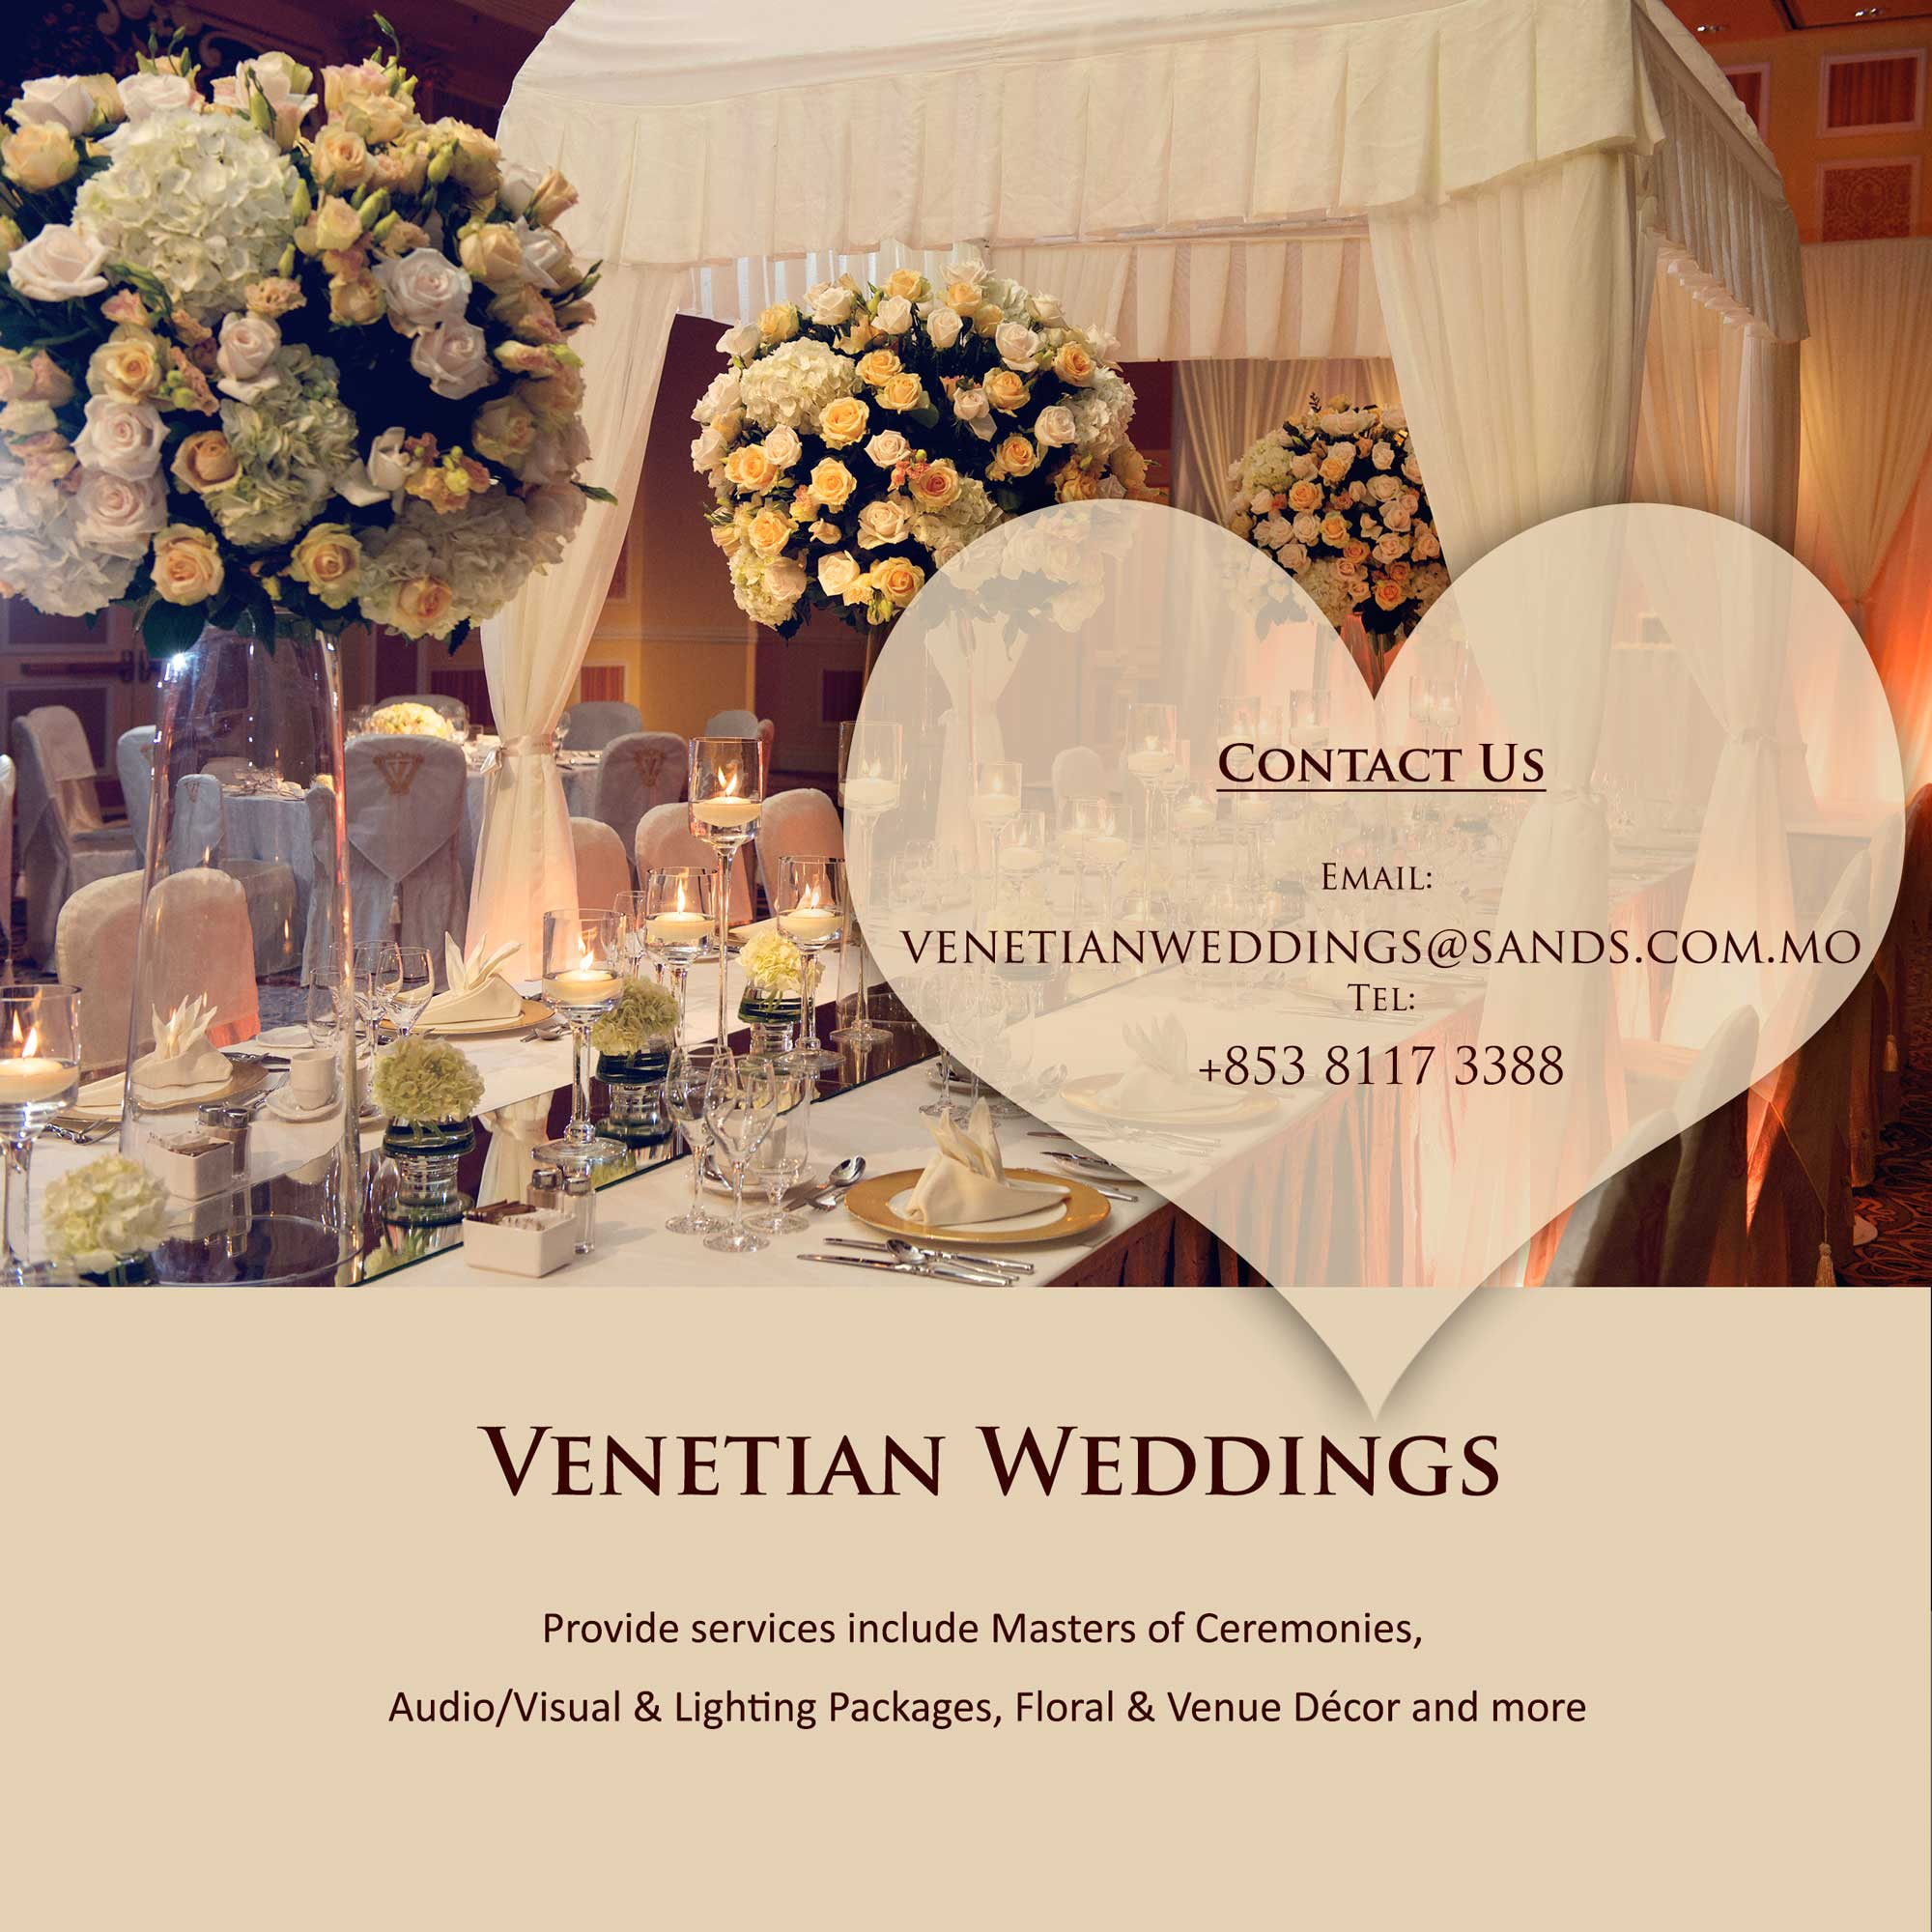 The Venetian Macao Weddings